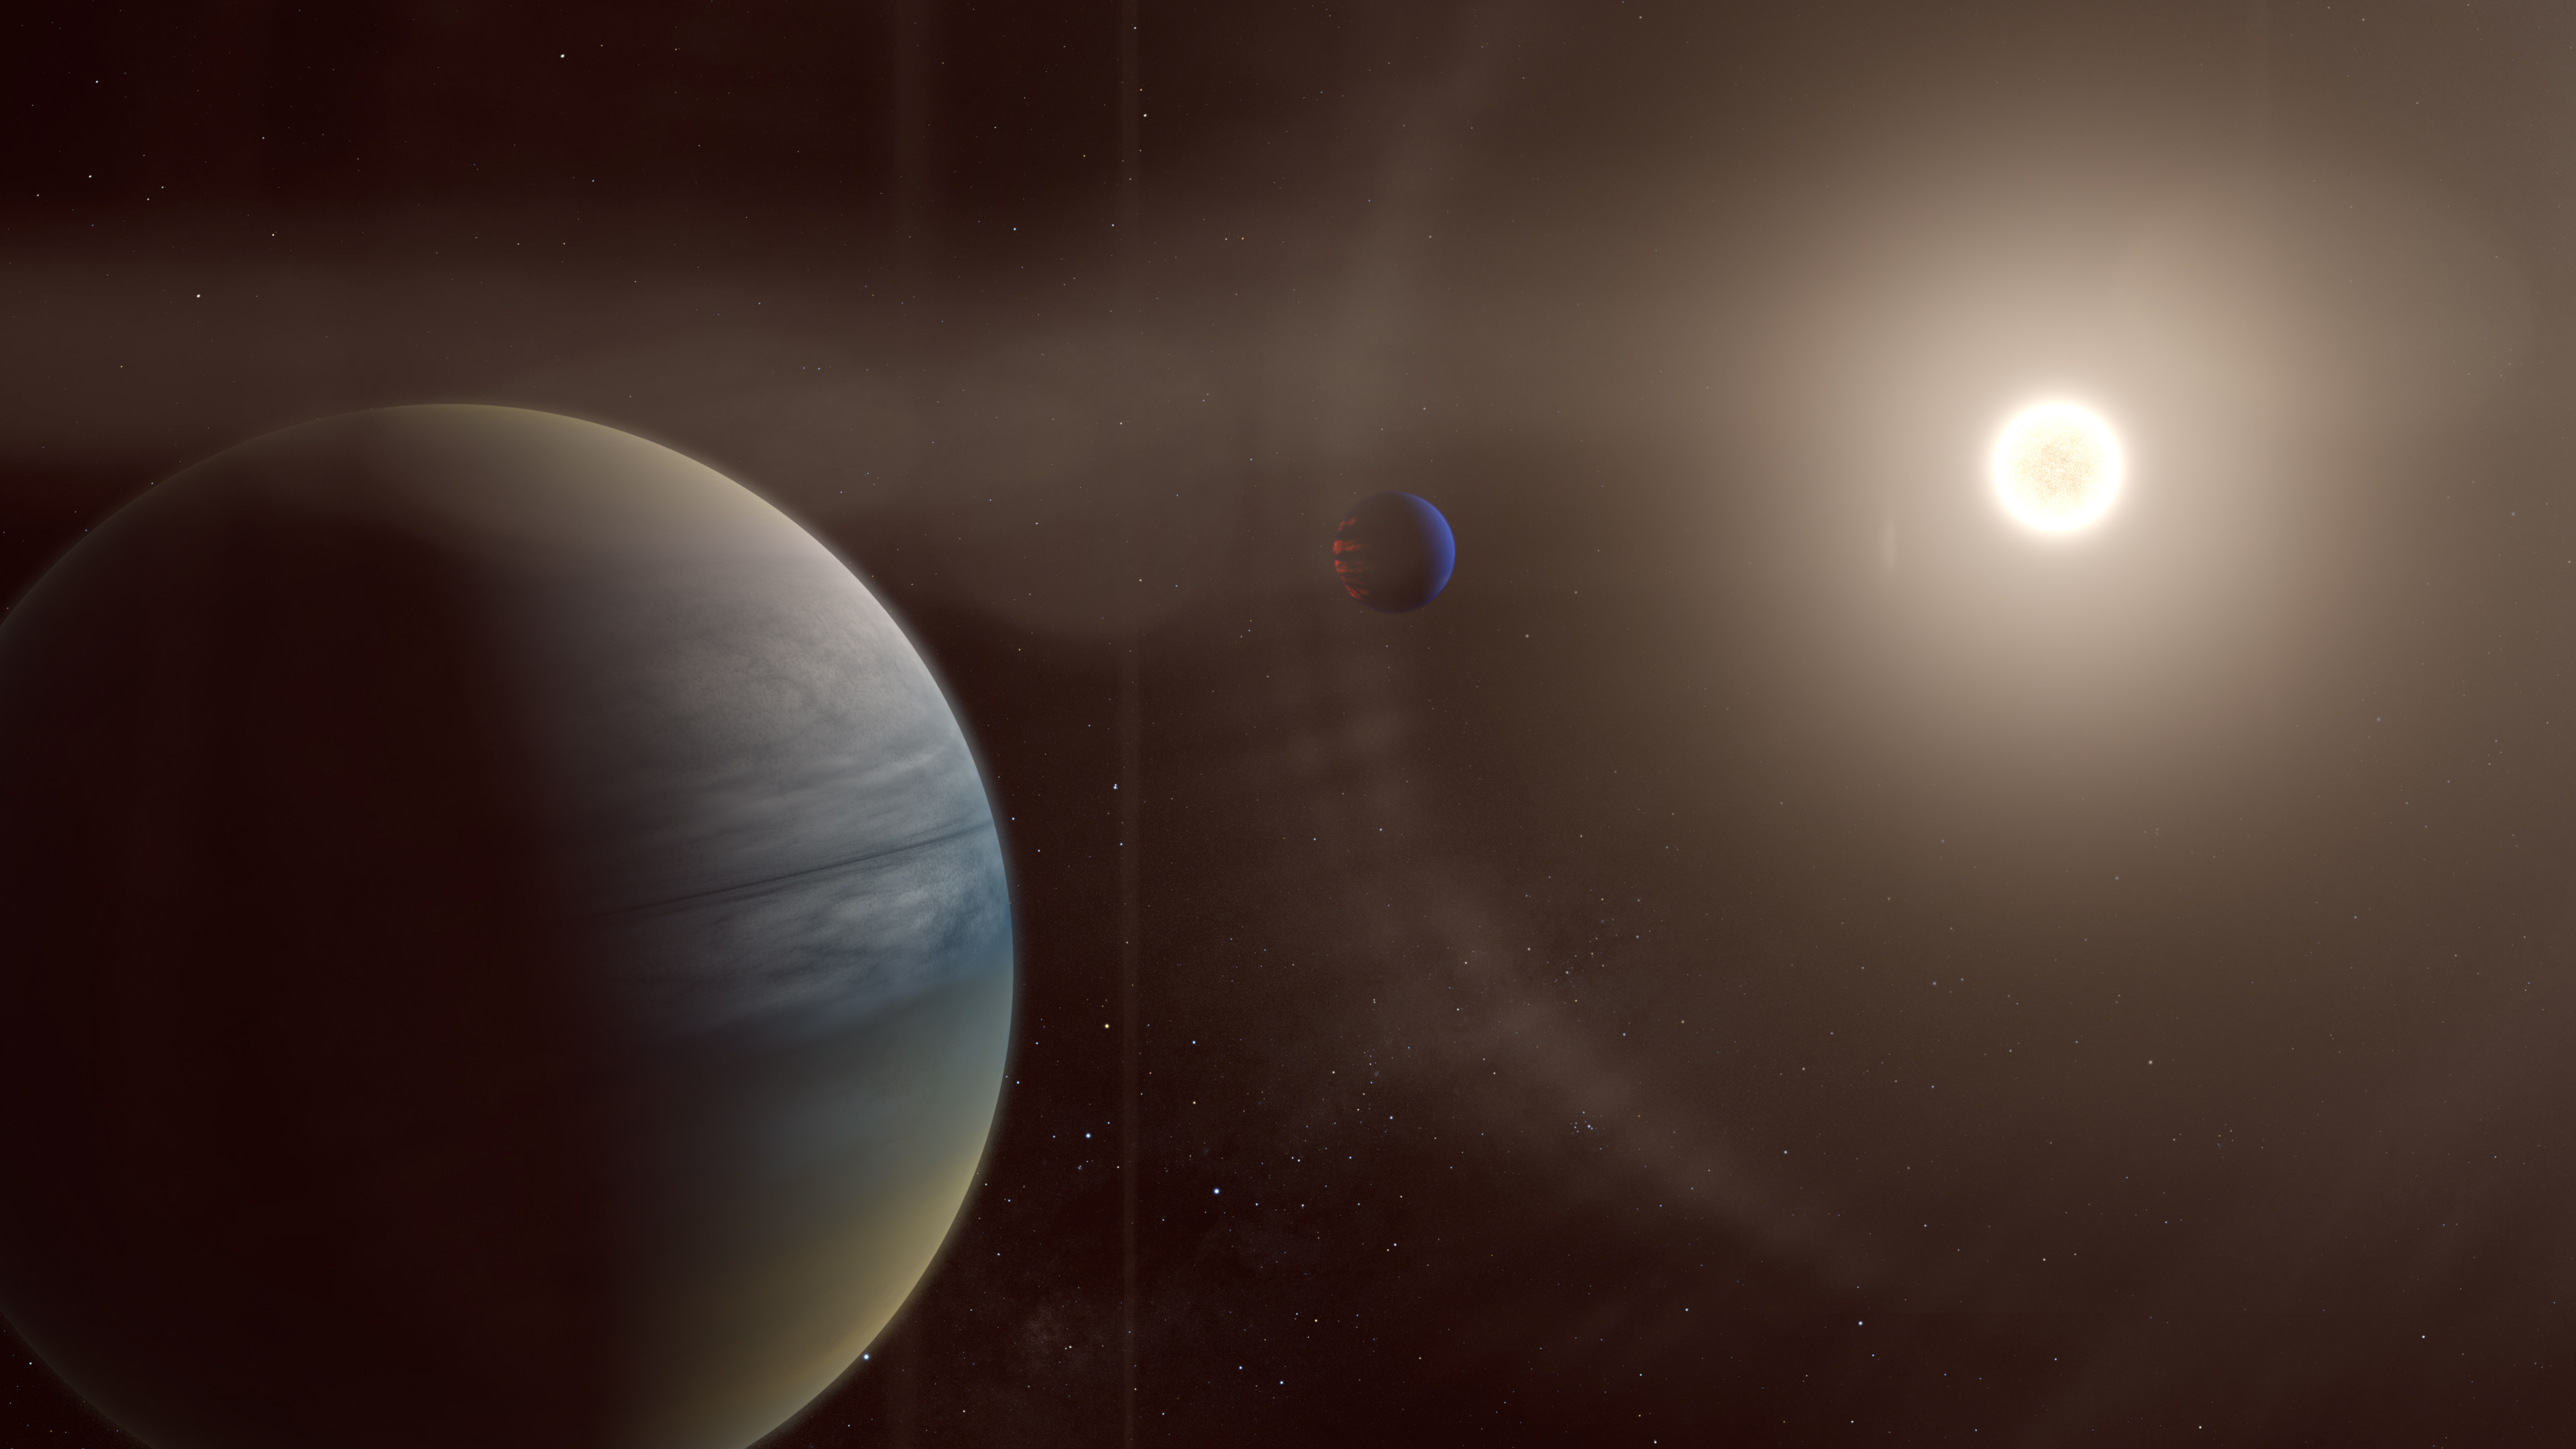 Citizen scientists discover 2 gas giants around a distant sun-like star